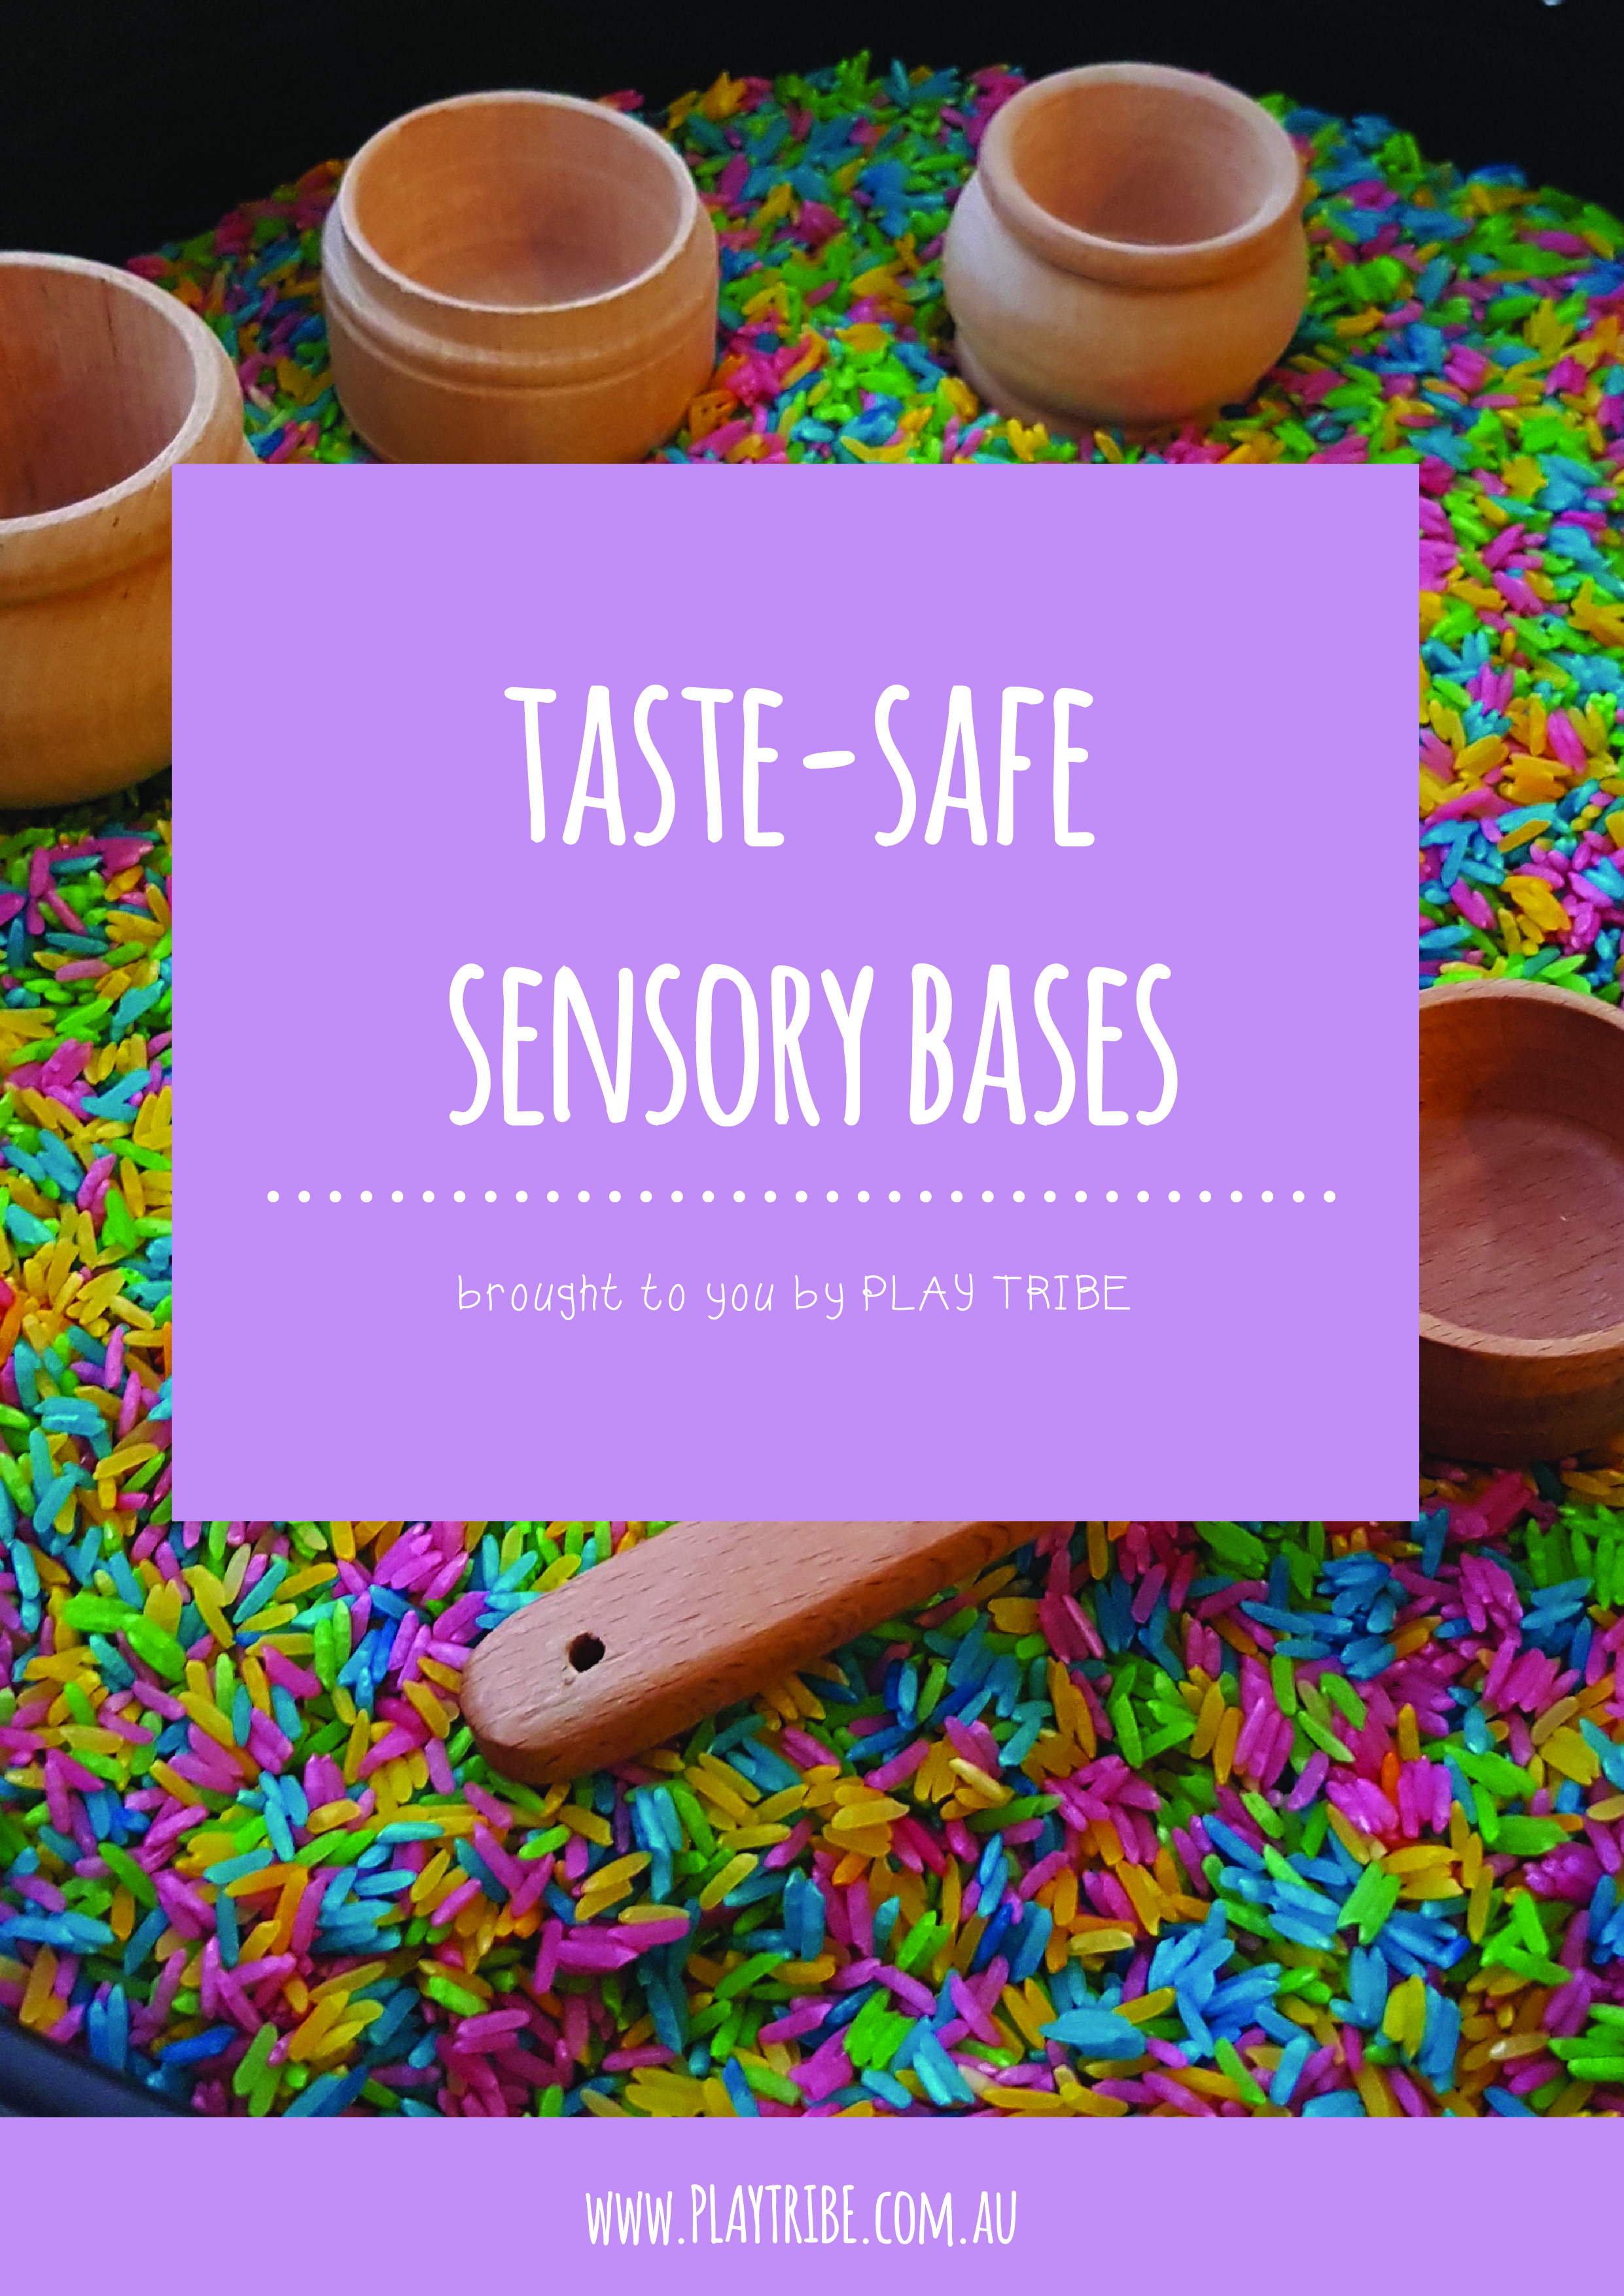 Free eBook all about taste-safe sensory bases. Perfect for your baby who is in the mouthing stage and a great safe alternative for your toddler. Includes sensory activities as well!